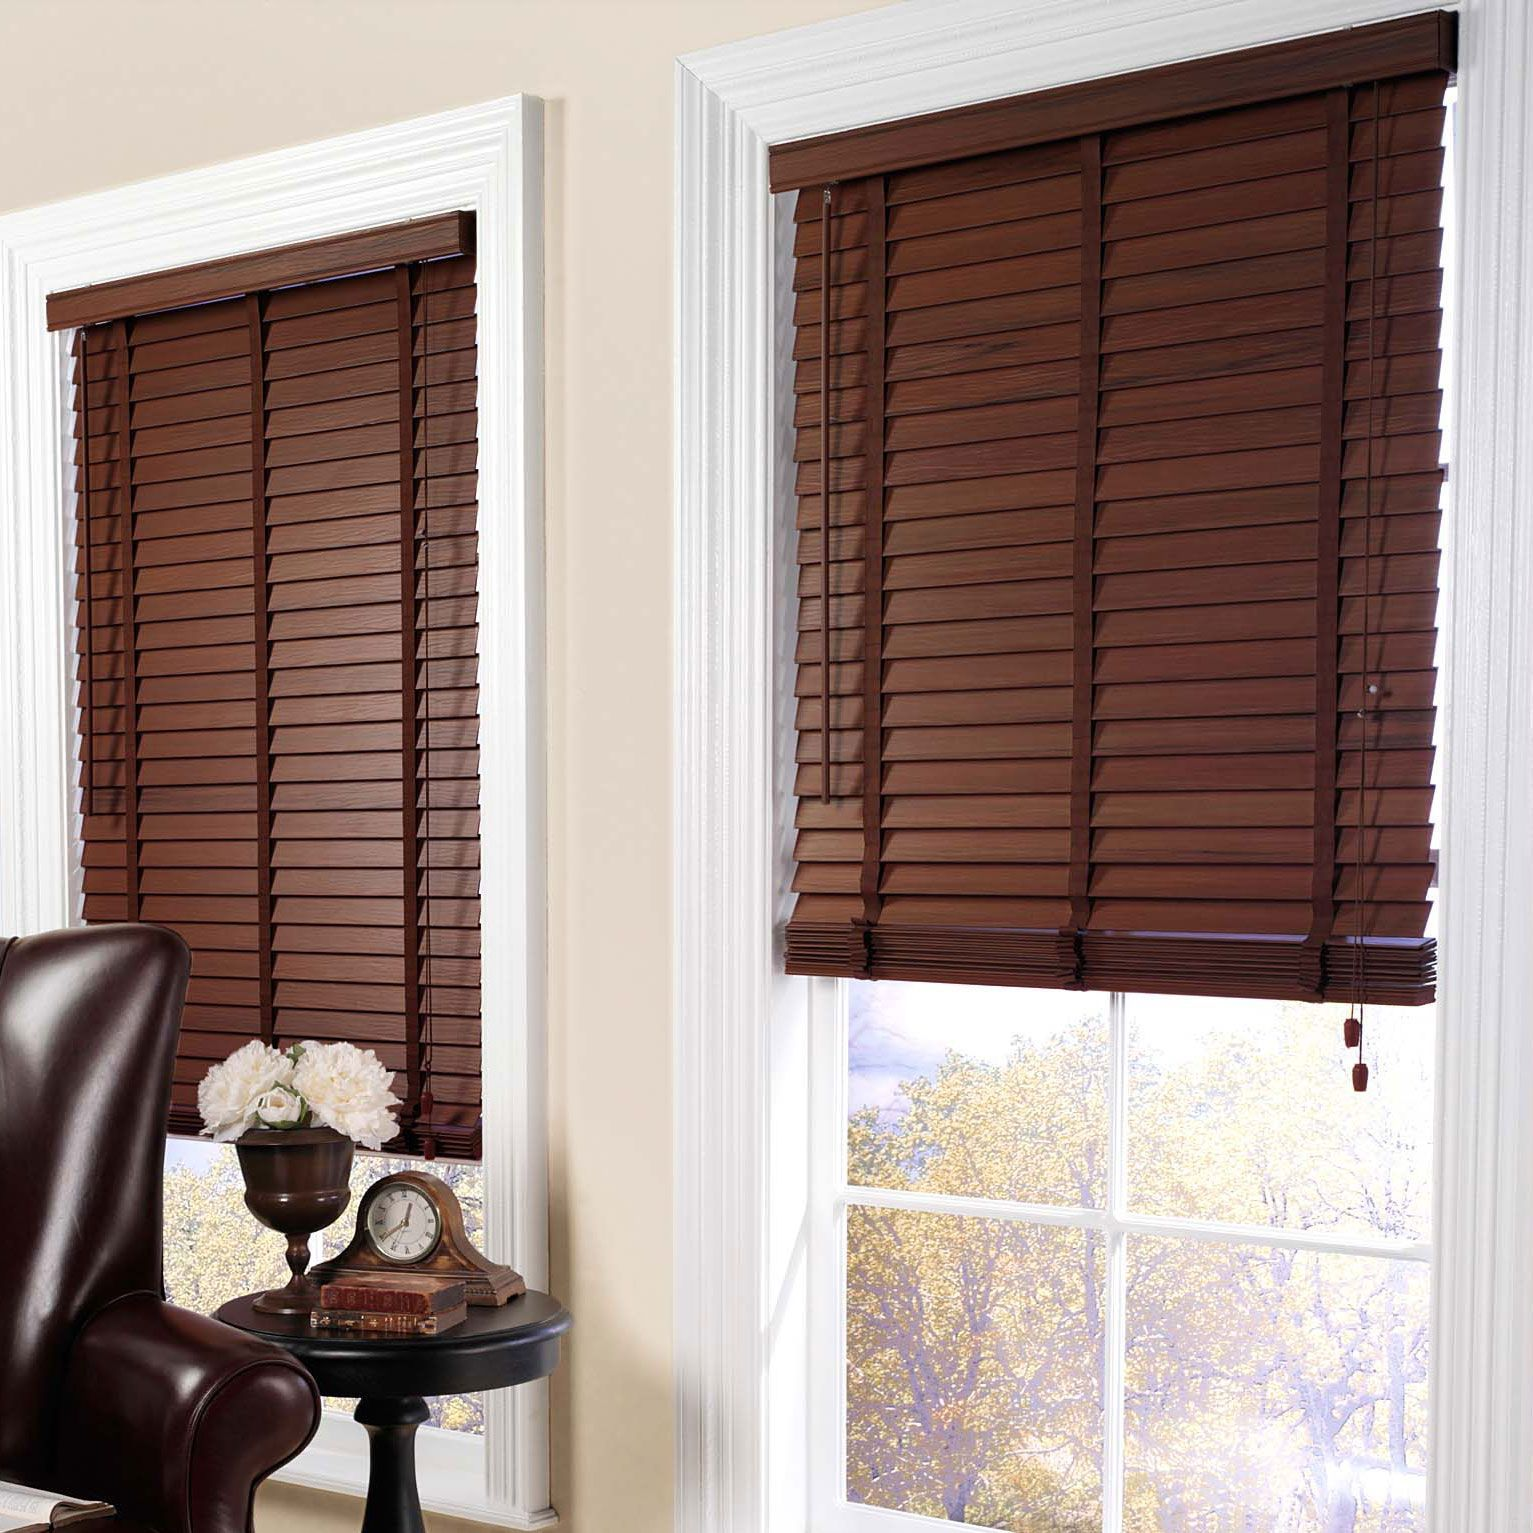 Wood Blinds For Down Stairs Wooden Window Blinds Blinds Design Blinds